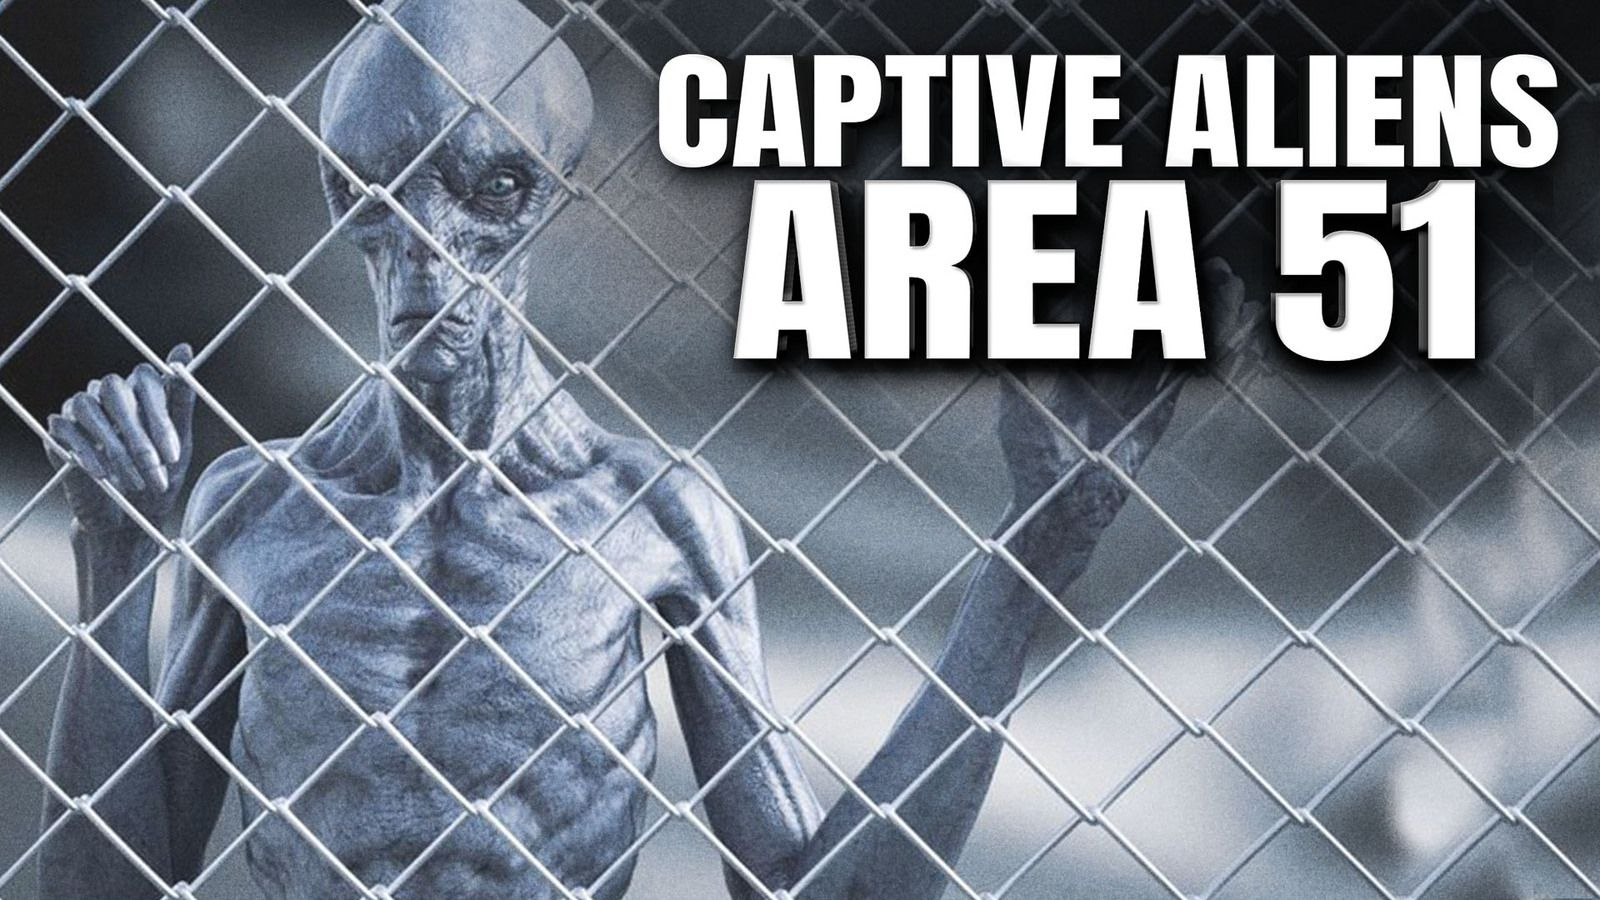 CAPTIVE ALIENS in Area 51 ? The KRILL Papers 👽